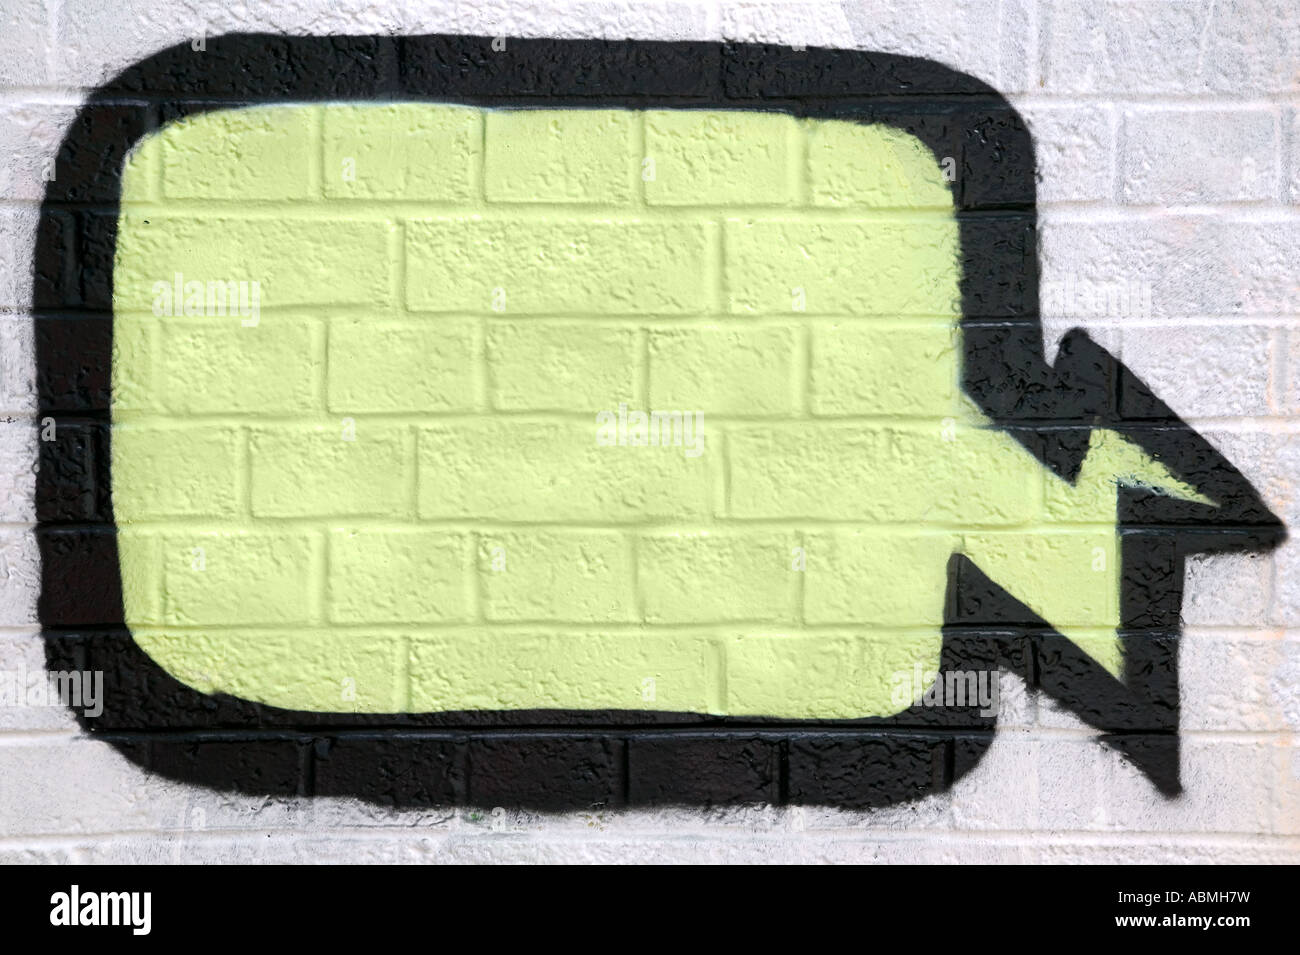 Graffiti thought bubble sprayed on a brick wall enter your own text - Stock Image